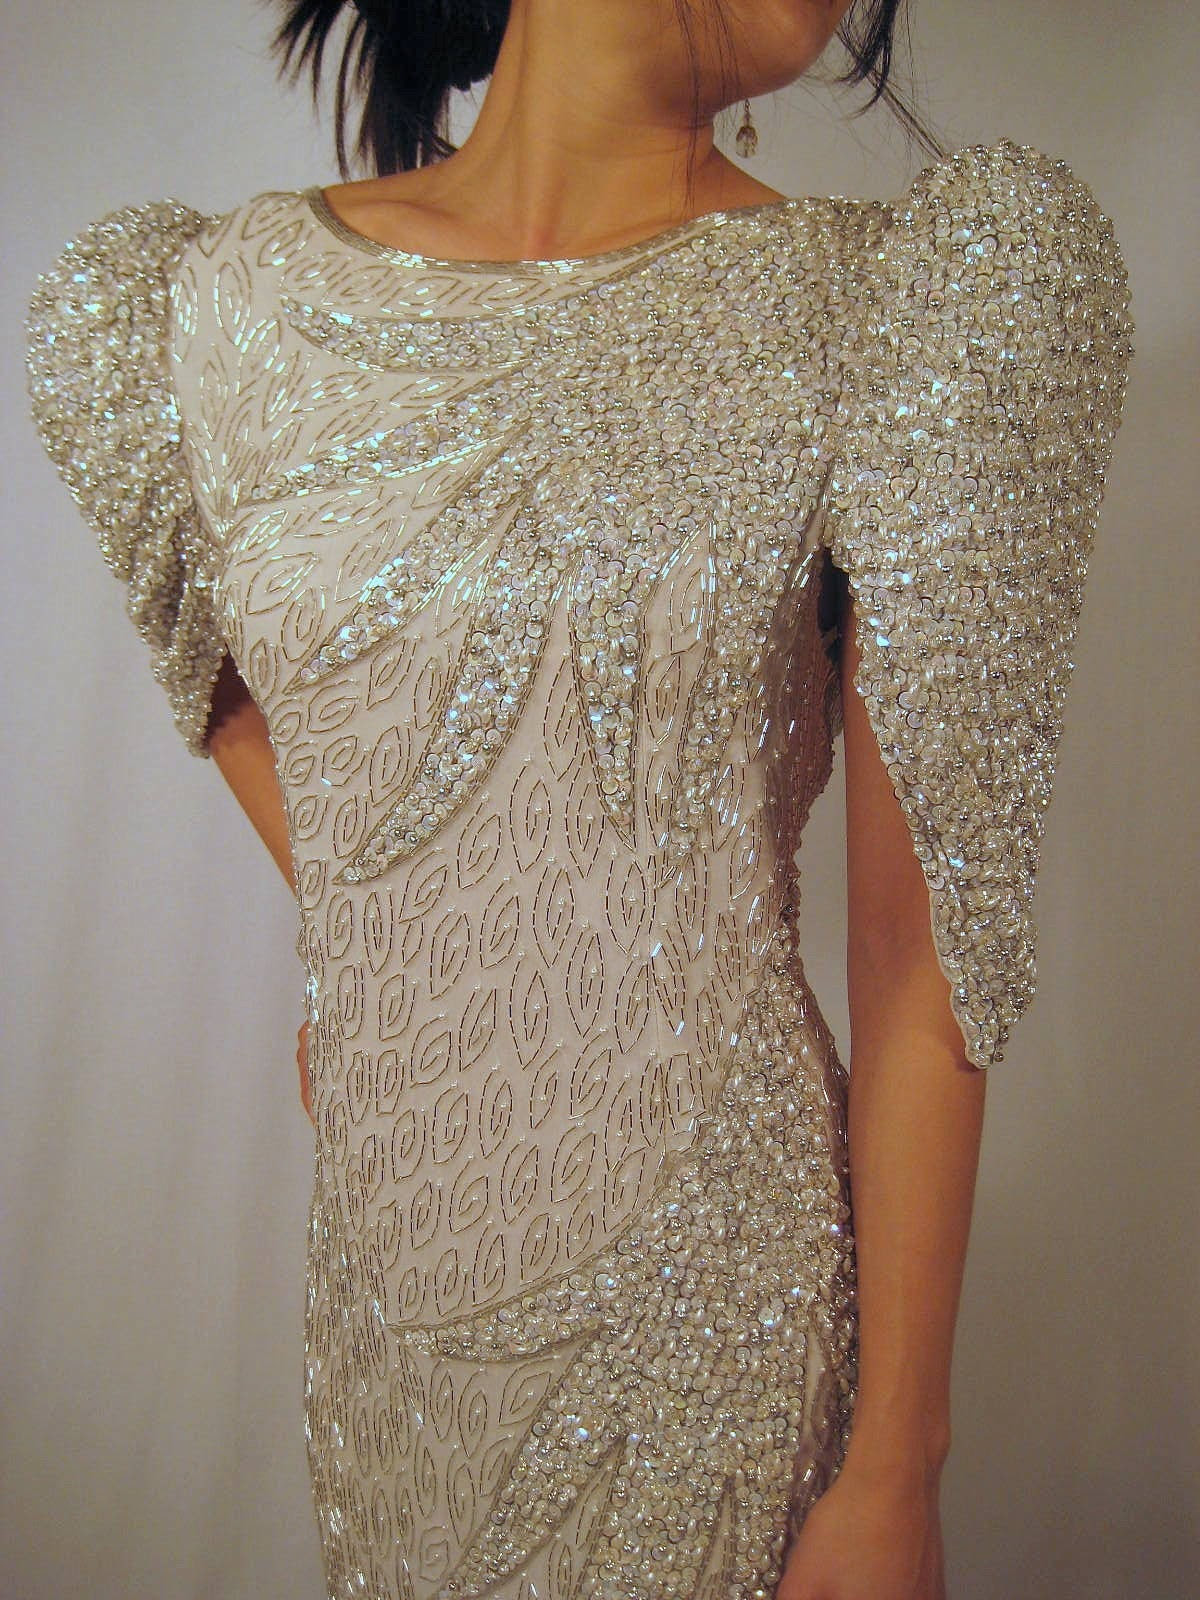 Spectacular Dazzling Grand Entrance.  smashing pearly angel jewel beaded cream and silver ball gown